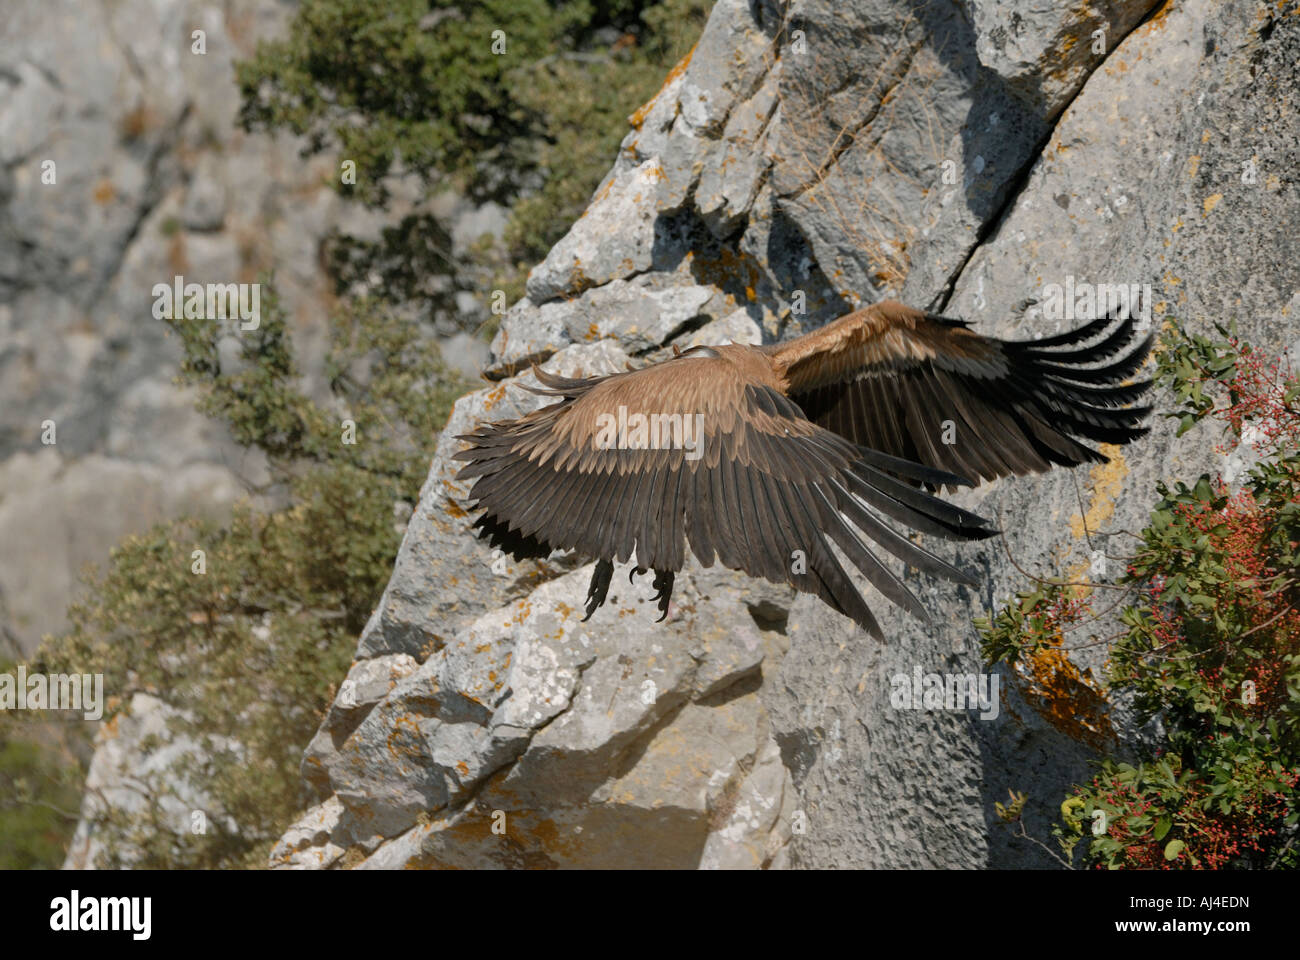 Adult Griffon Vulture coming into land with wings swept forward - Stock Image